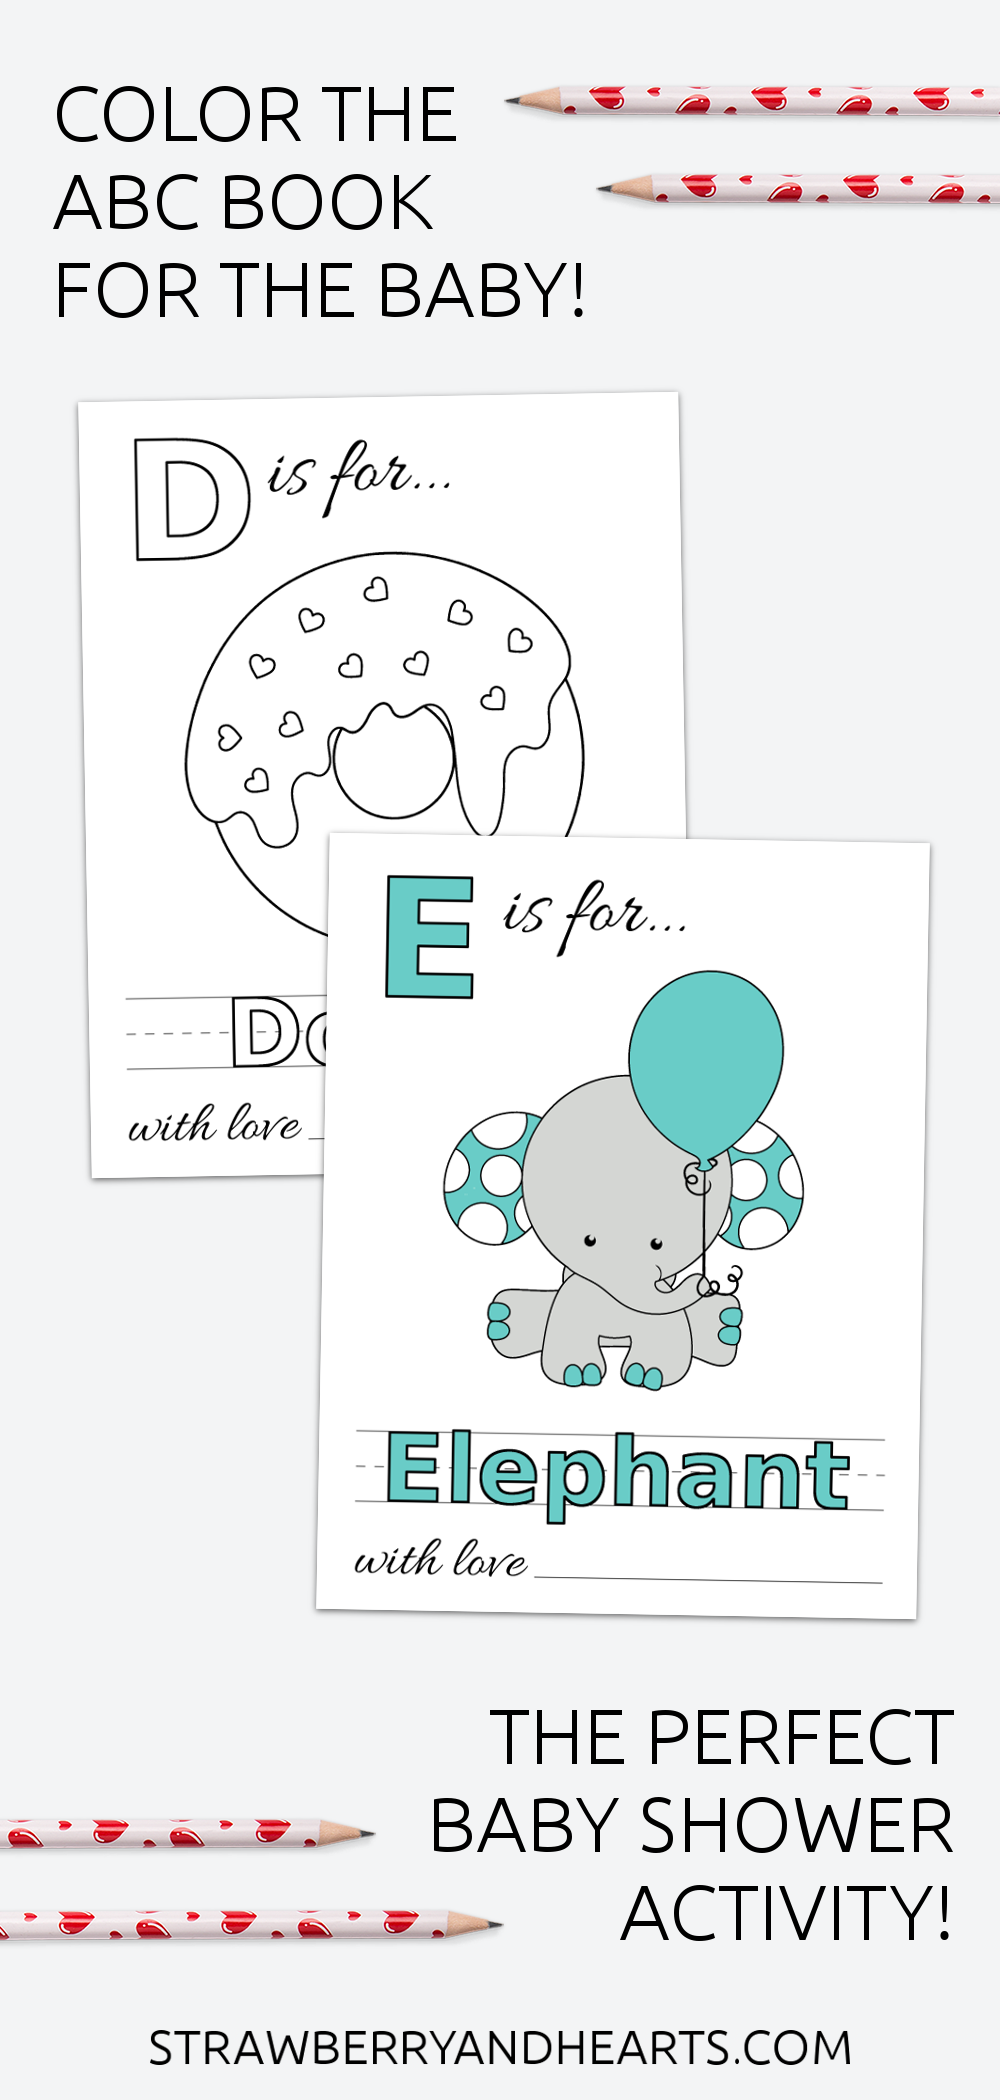 Baby S First Abc Book Coloring Pages Baby Shower Activity Baby Shower Activities Baby Shower Book Shower Activity [ 2100 x 1000 Pixel ]